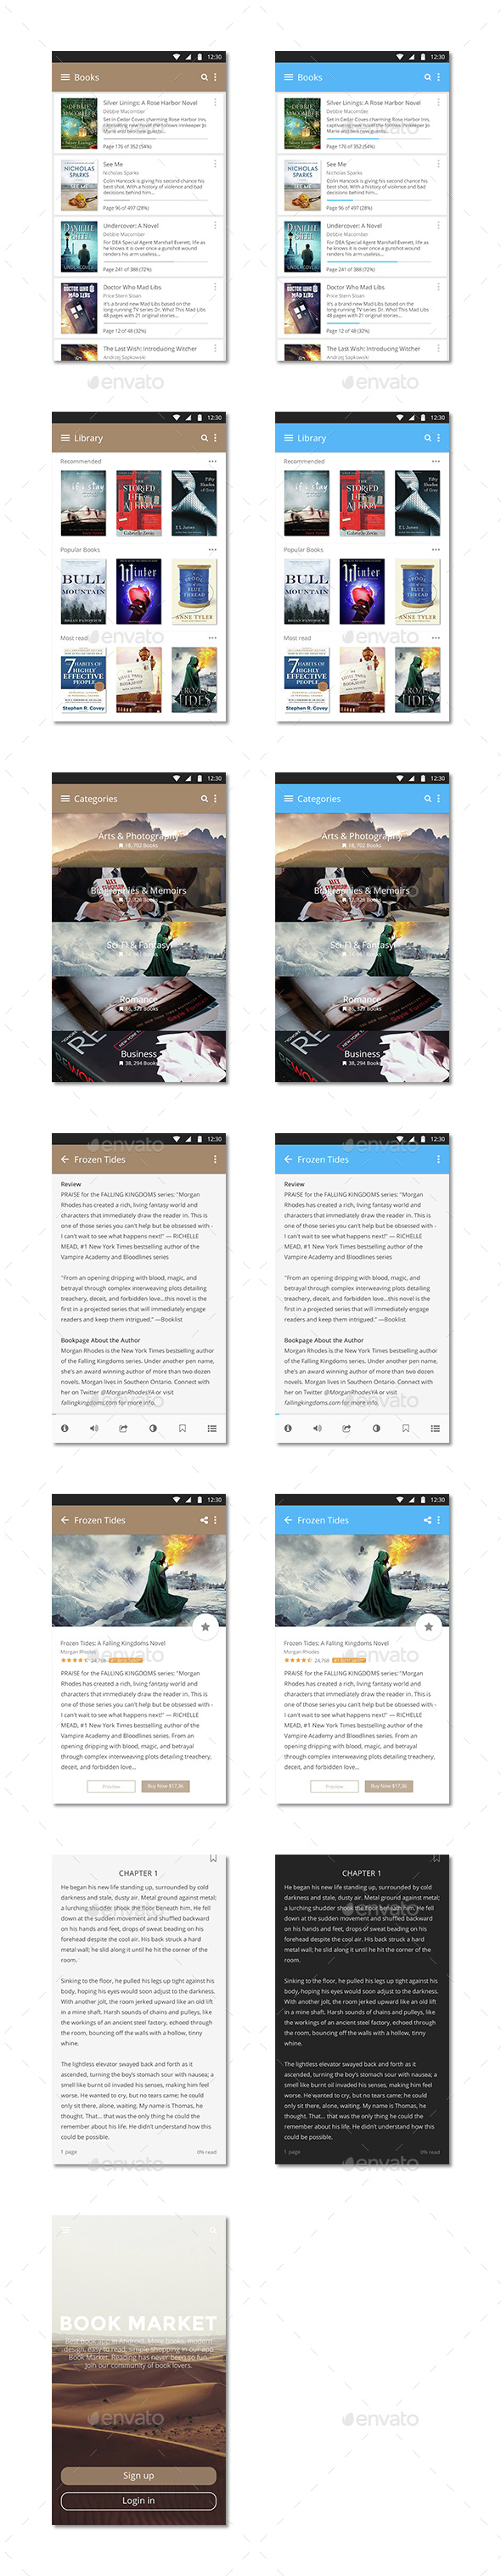 Book Market Android - User Interfaces Web Elements